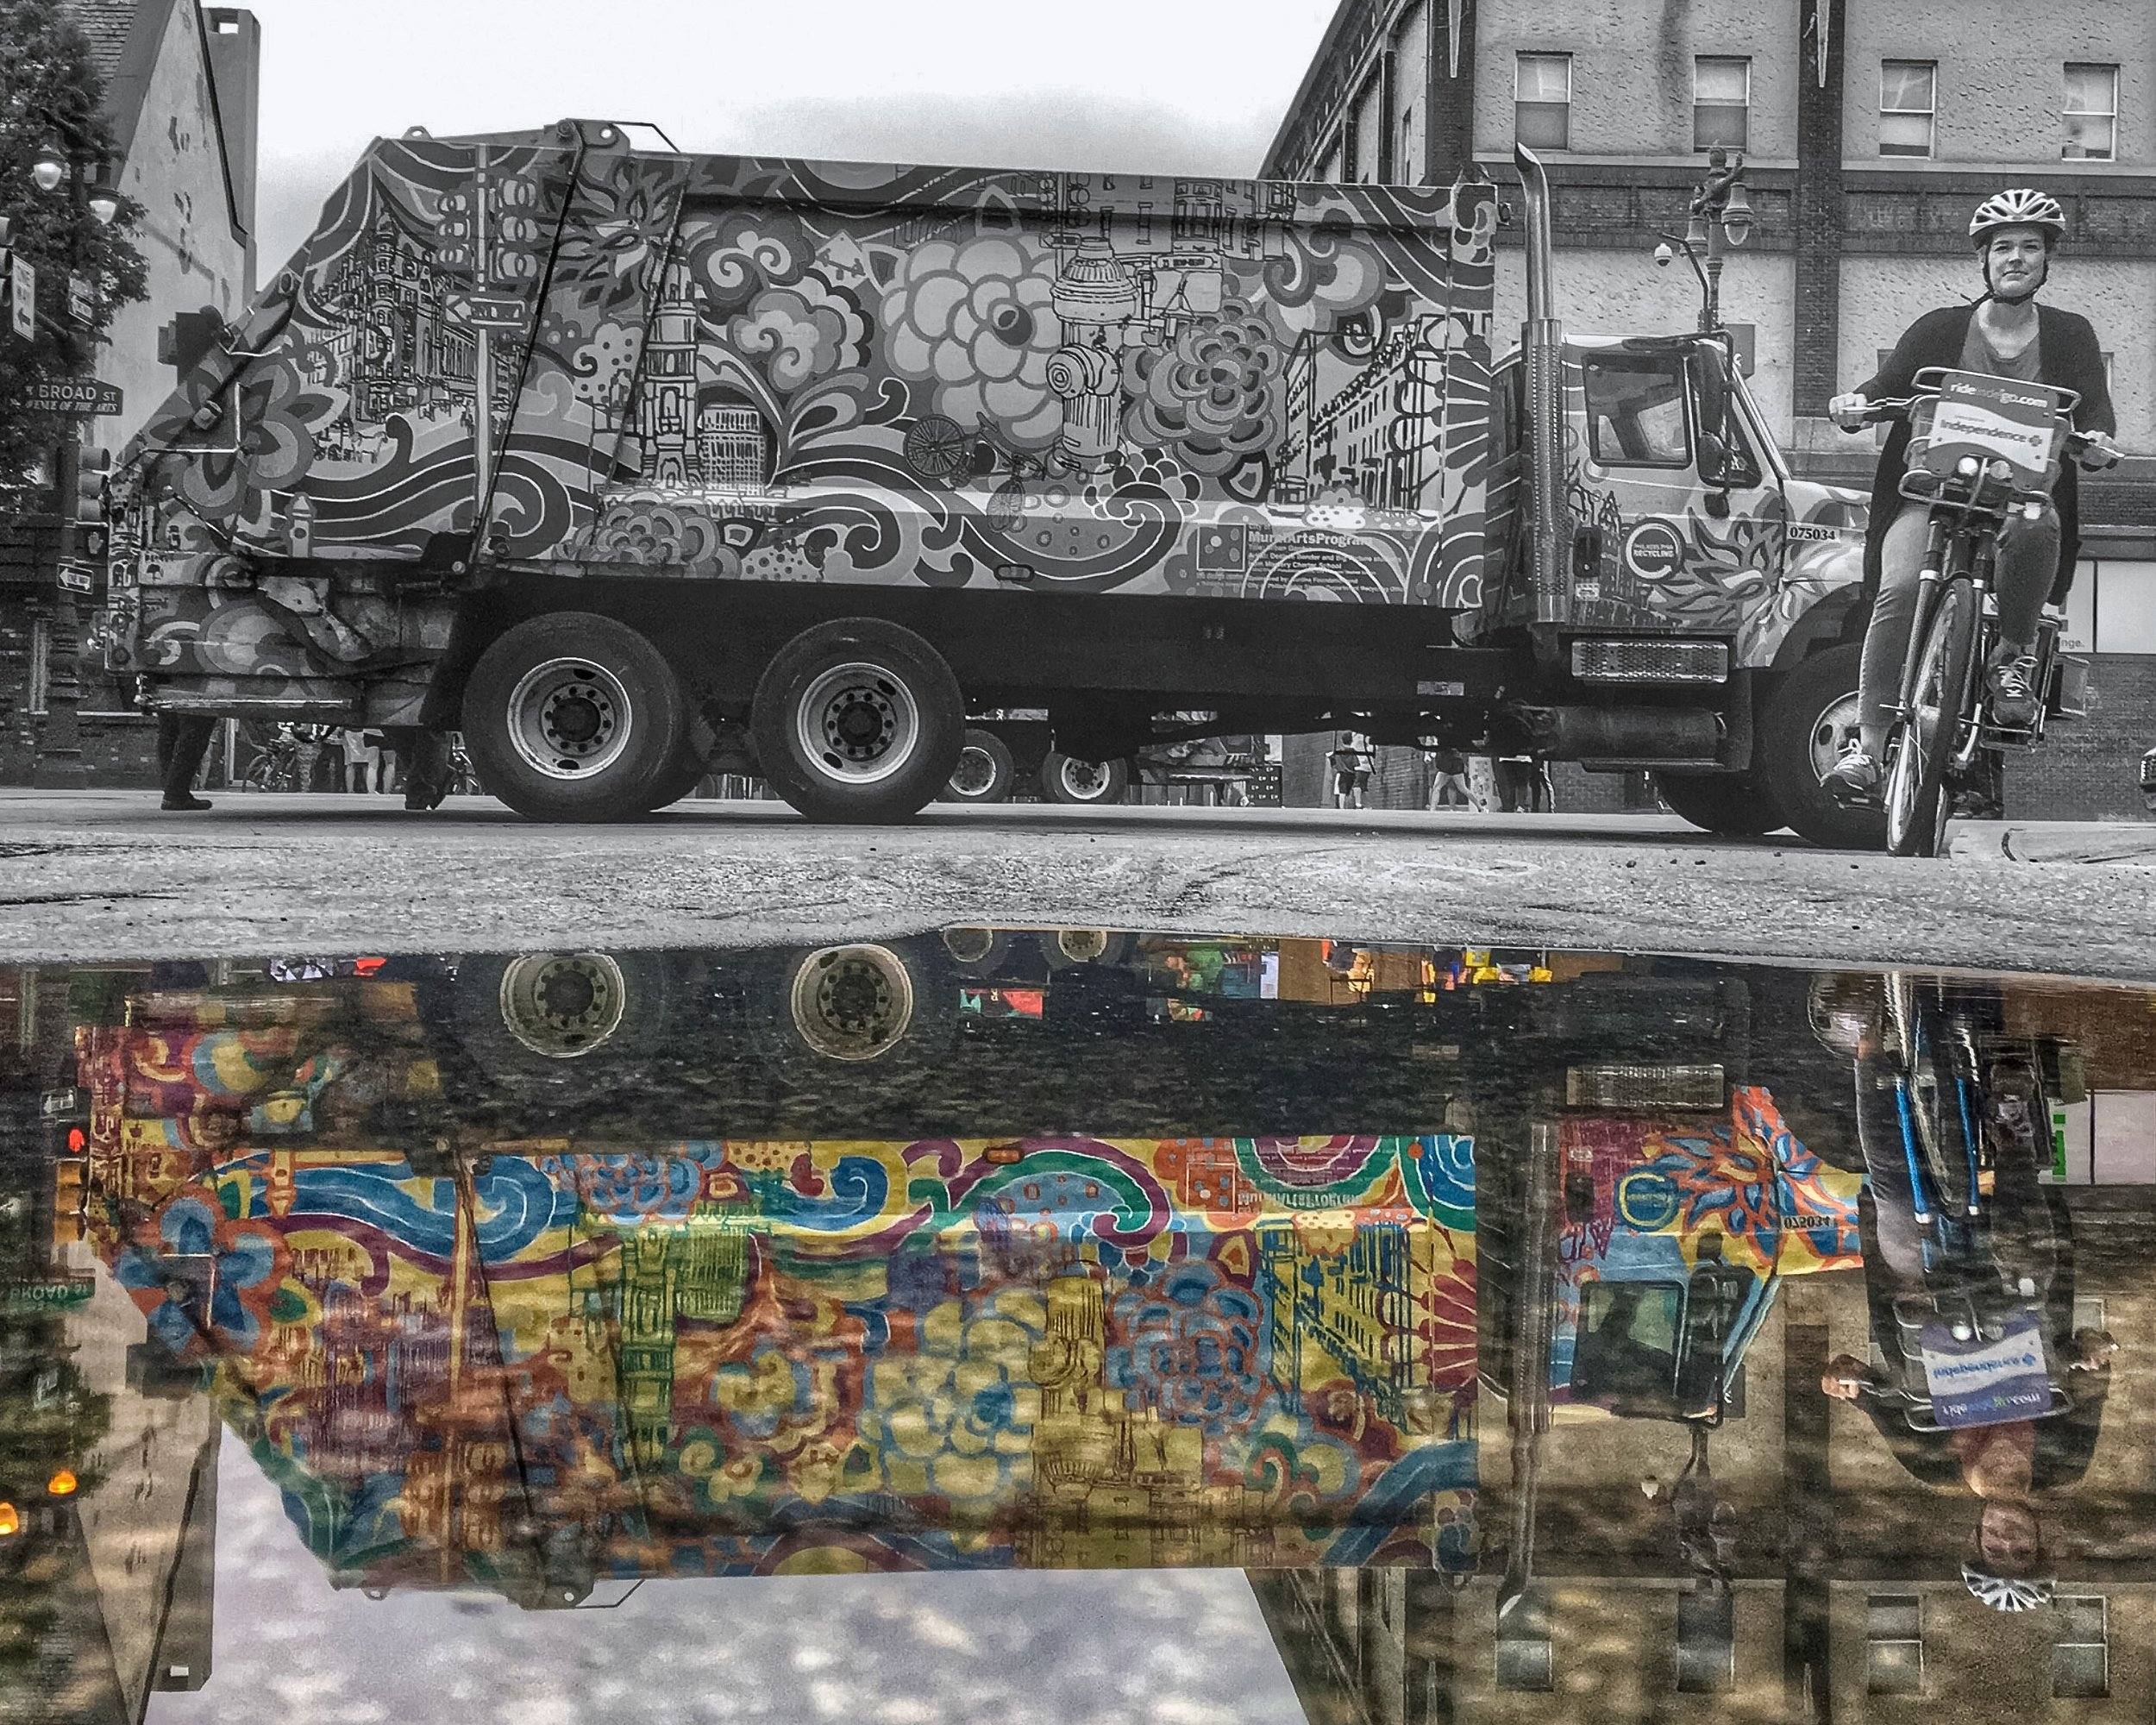 One city's trash truck is another city's treasure